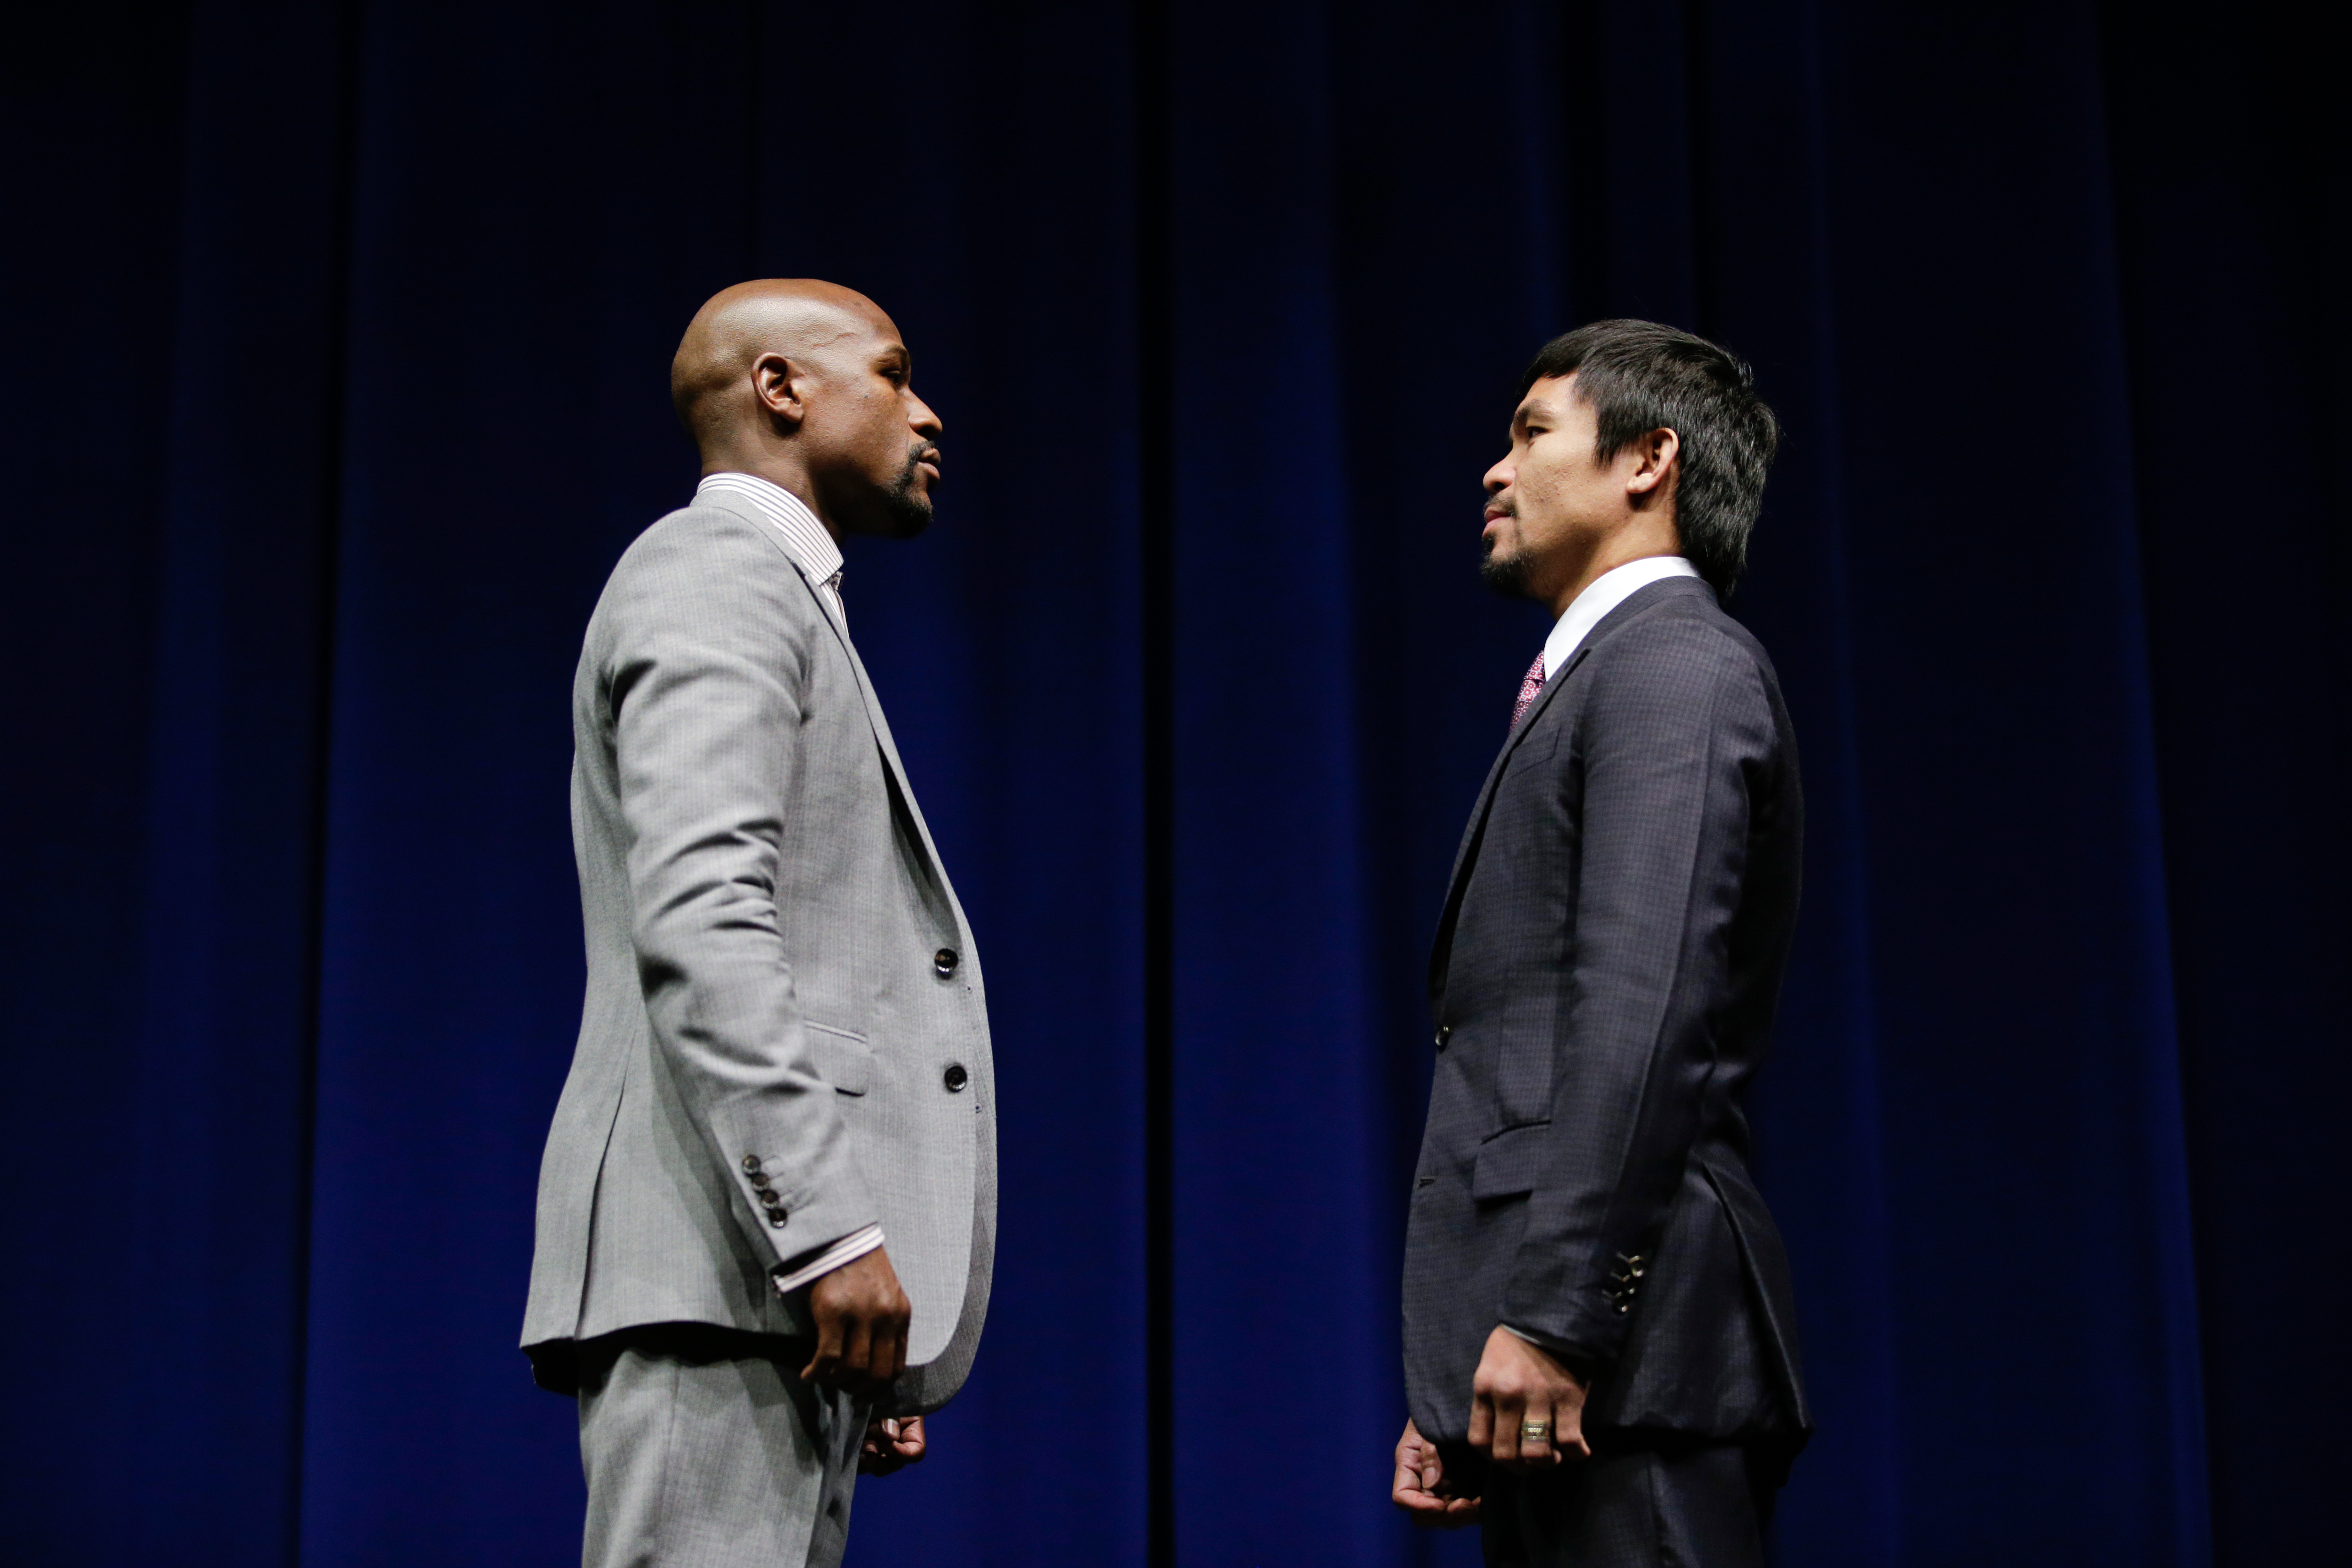 Boxers Floyd Mayweather Jr., left, and Manny Pacquiao, of the Philippines, pose for photos during a news conference, Wednesday, March 11, 2015, in Los Angeles. The two are scheduled to fight in Las Vegas on May 2.